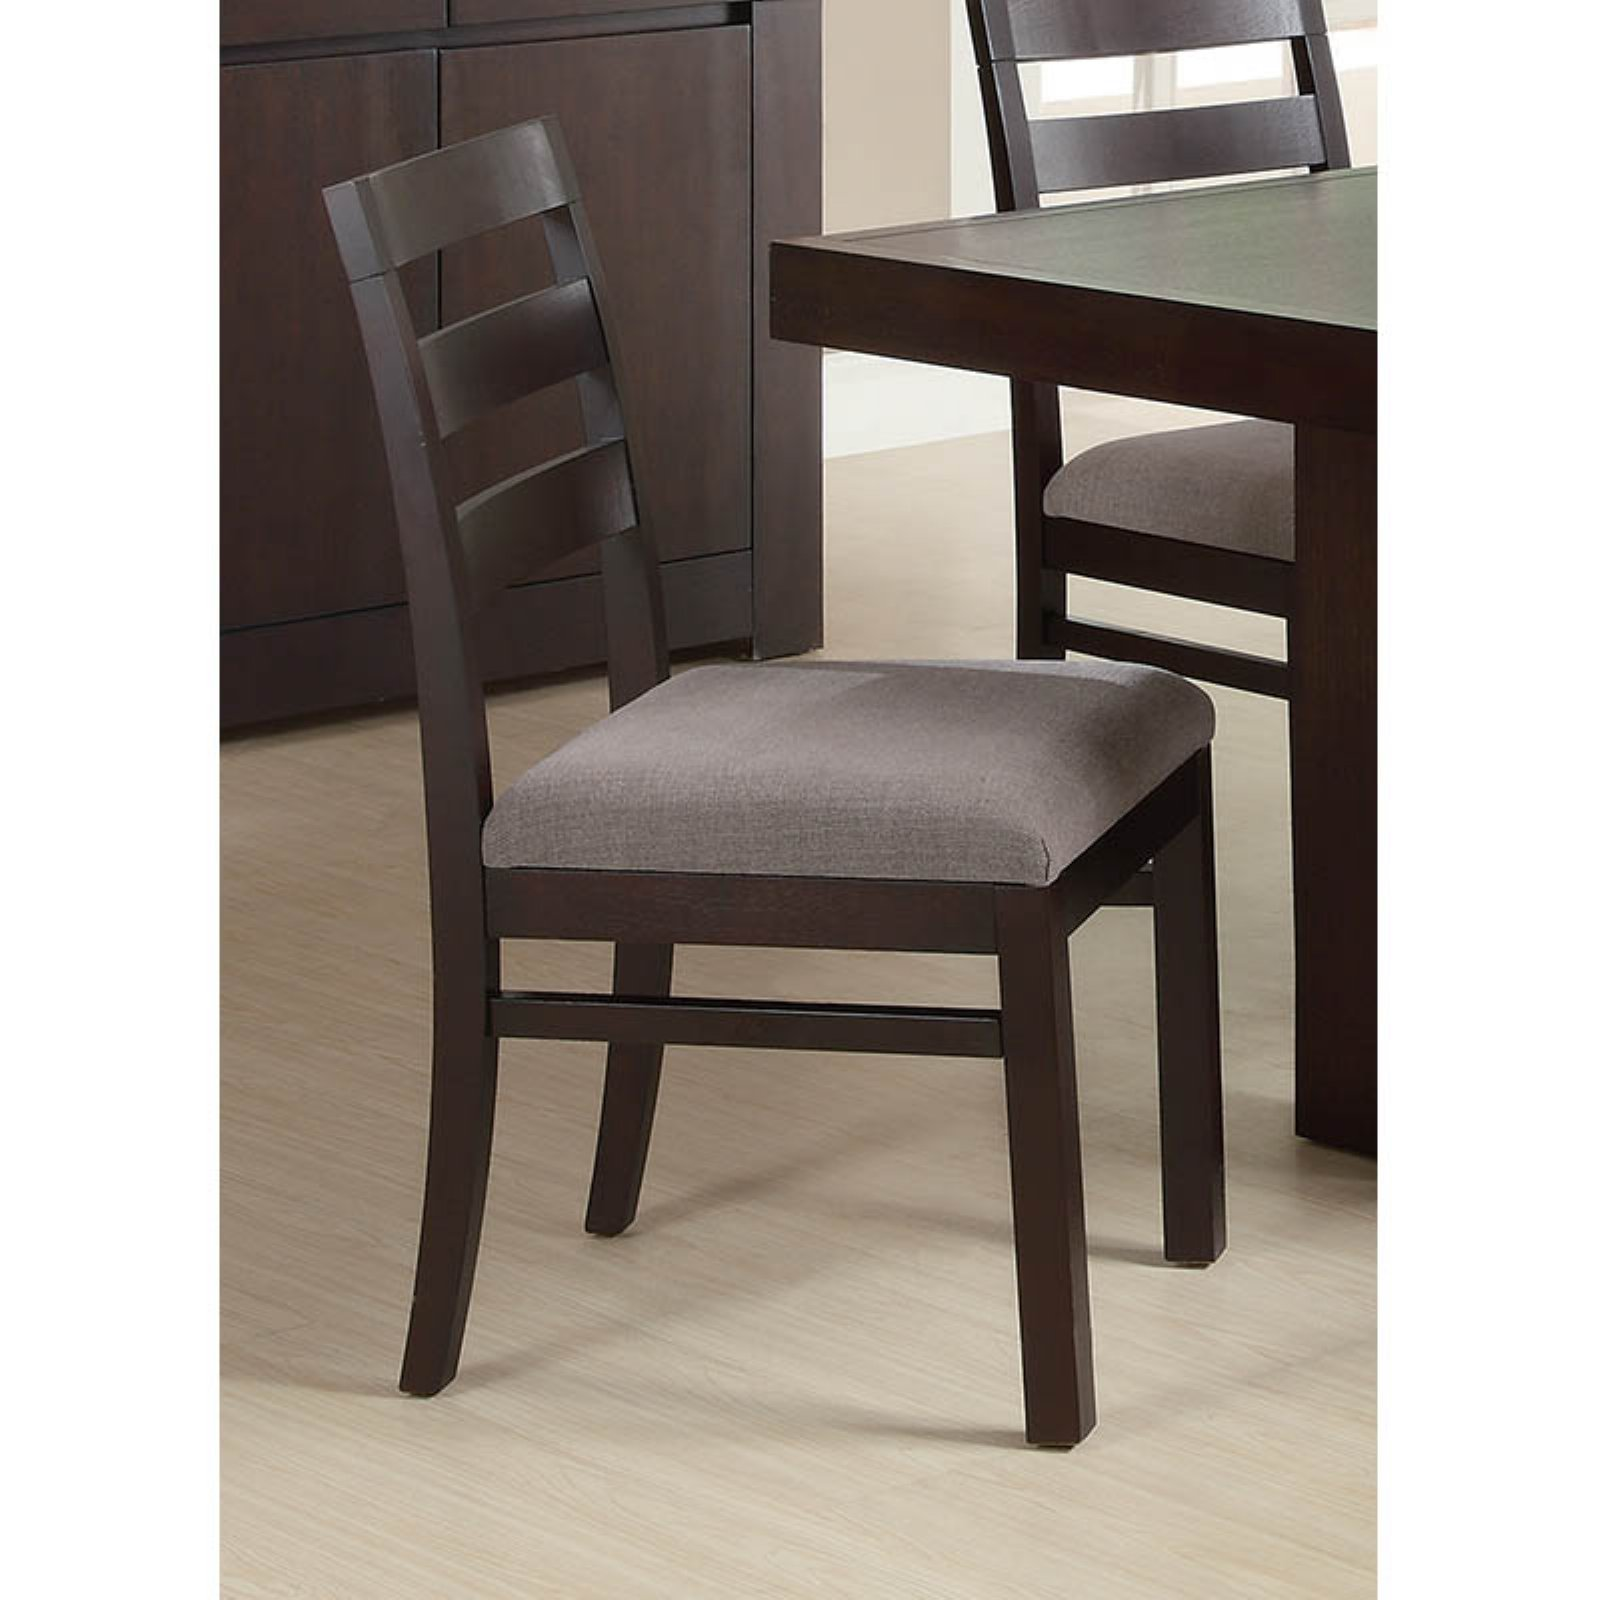 Coaster Furniture Dabny Ladder Back Dining Side Chair - Set of 2